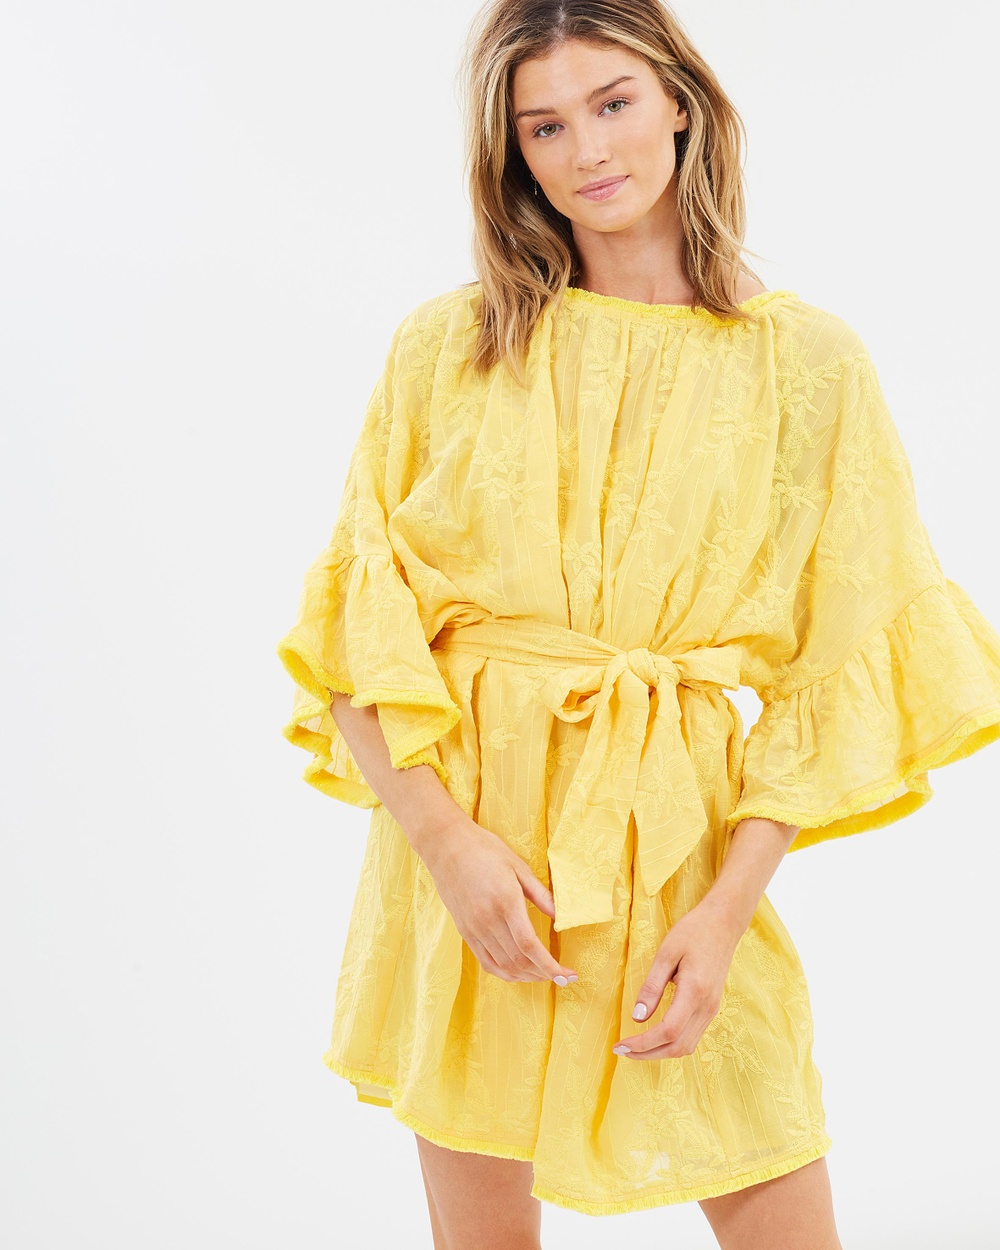 Lost Ink Ruffle Sleeve Embroidered Mini Dress Dresses Yellow Ruffle Sleeve Embroidered Mini Dress